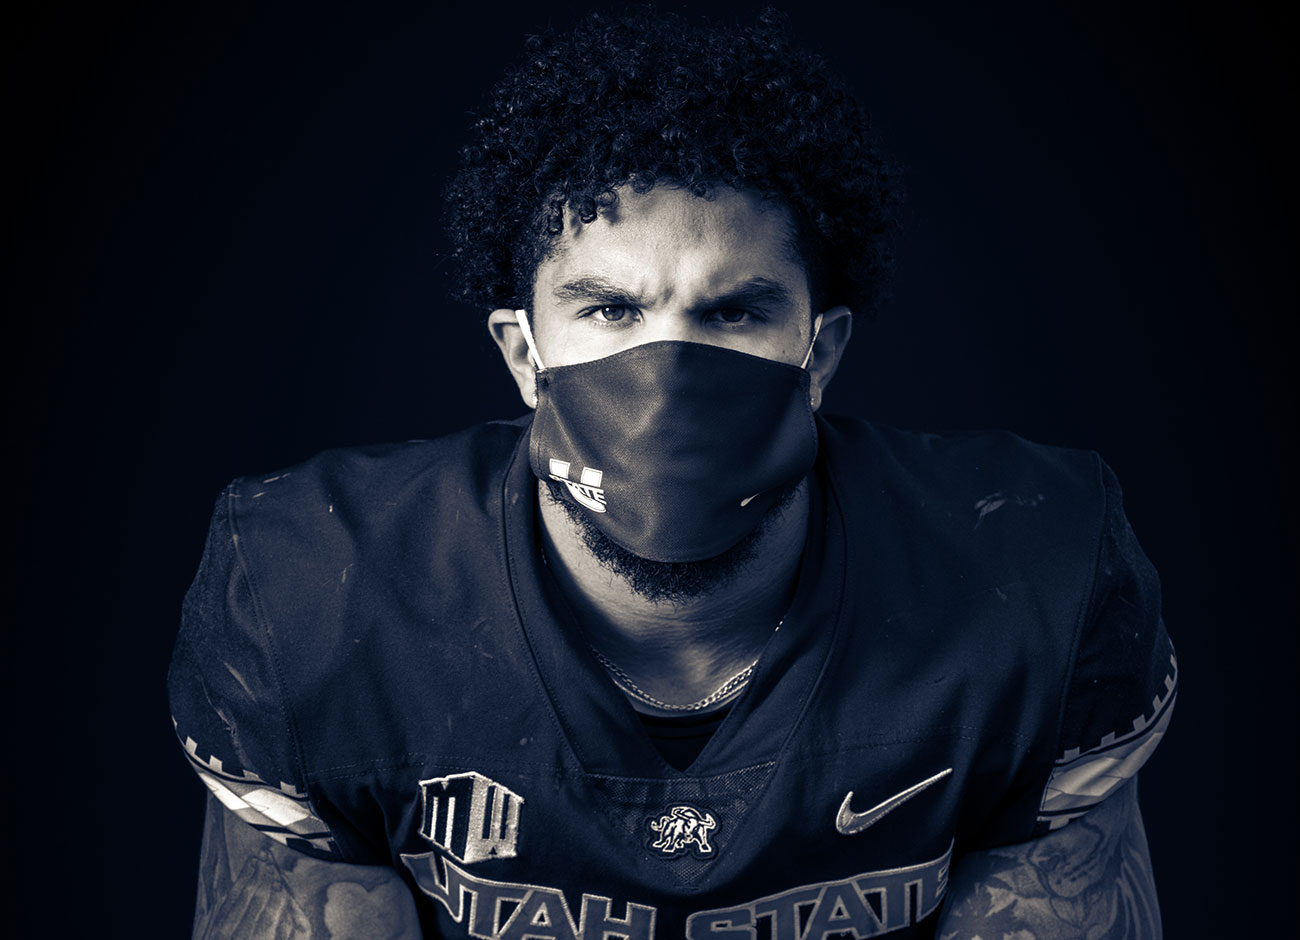 a college football player sits wearing a mask due to covid-19